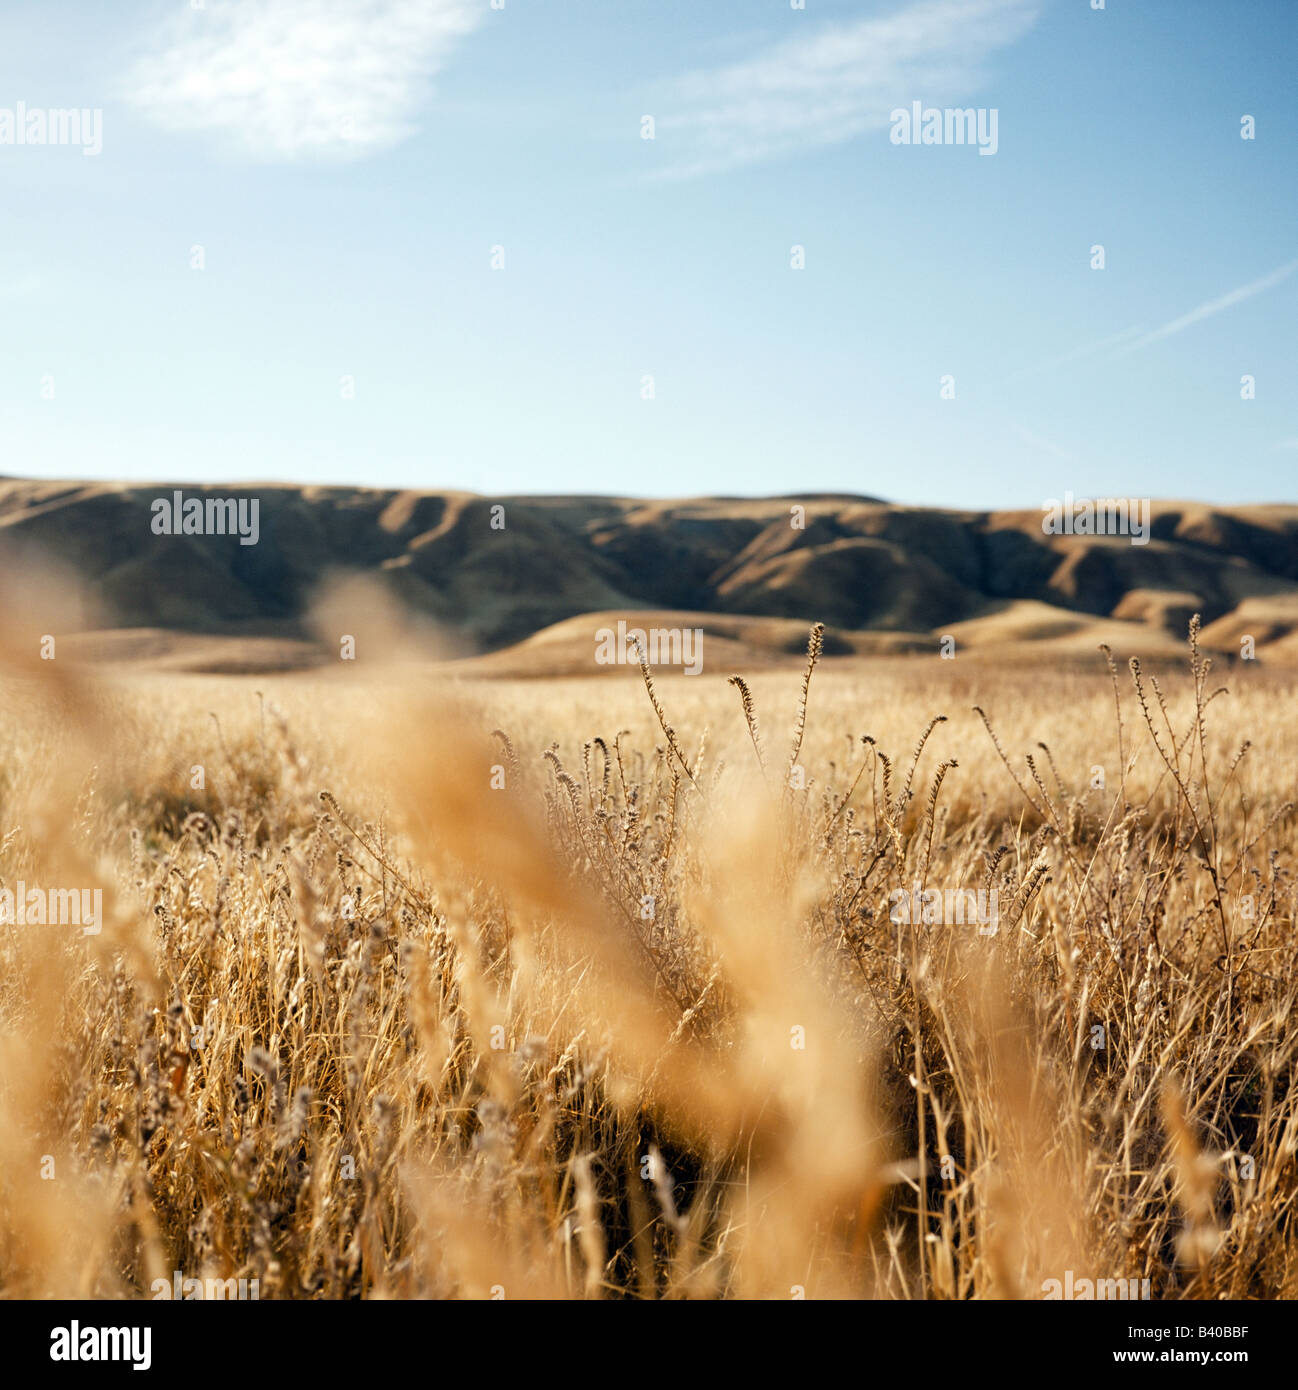 Golden hills and a blue sky along highway 46 in Chalome, California. - Stock Image